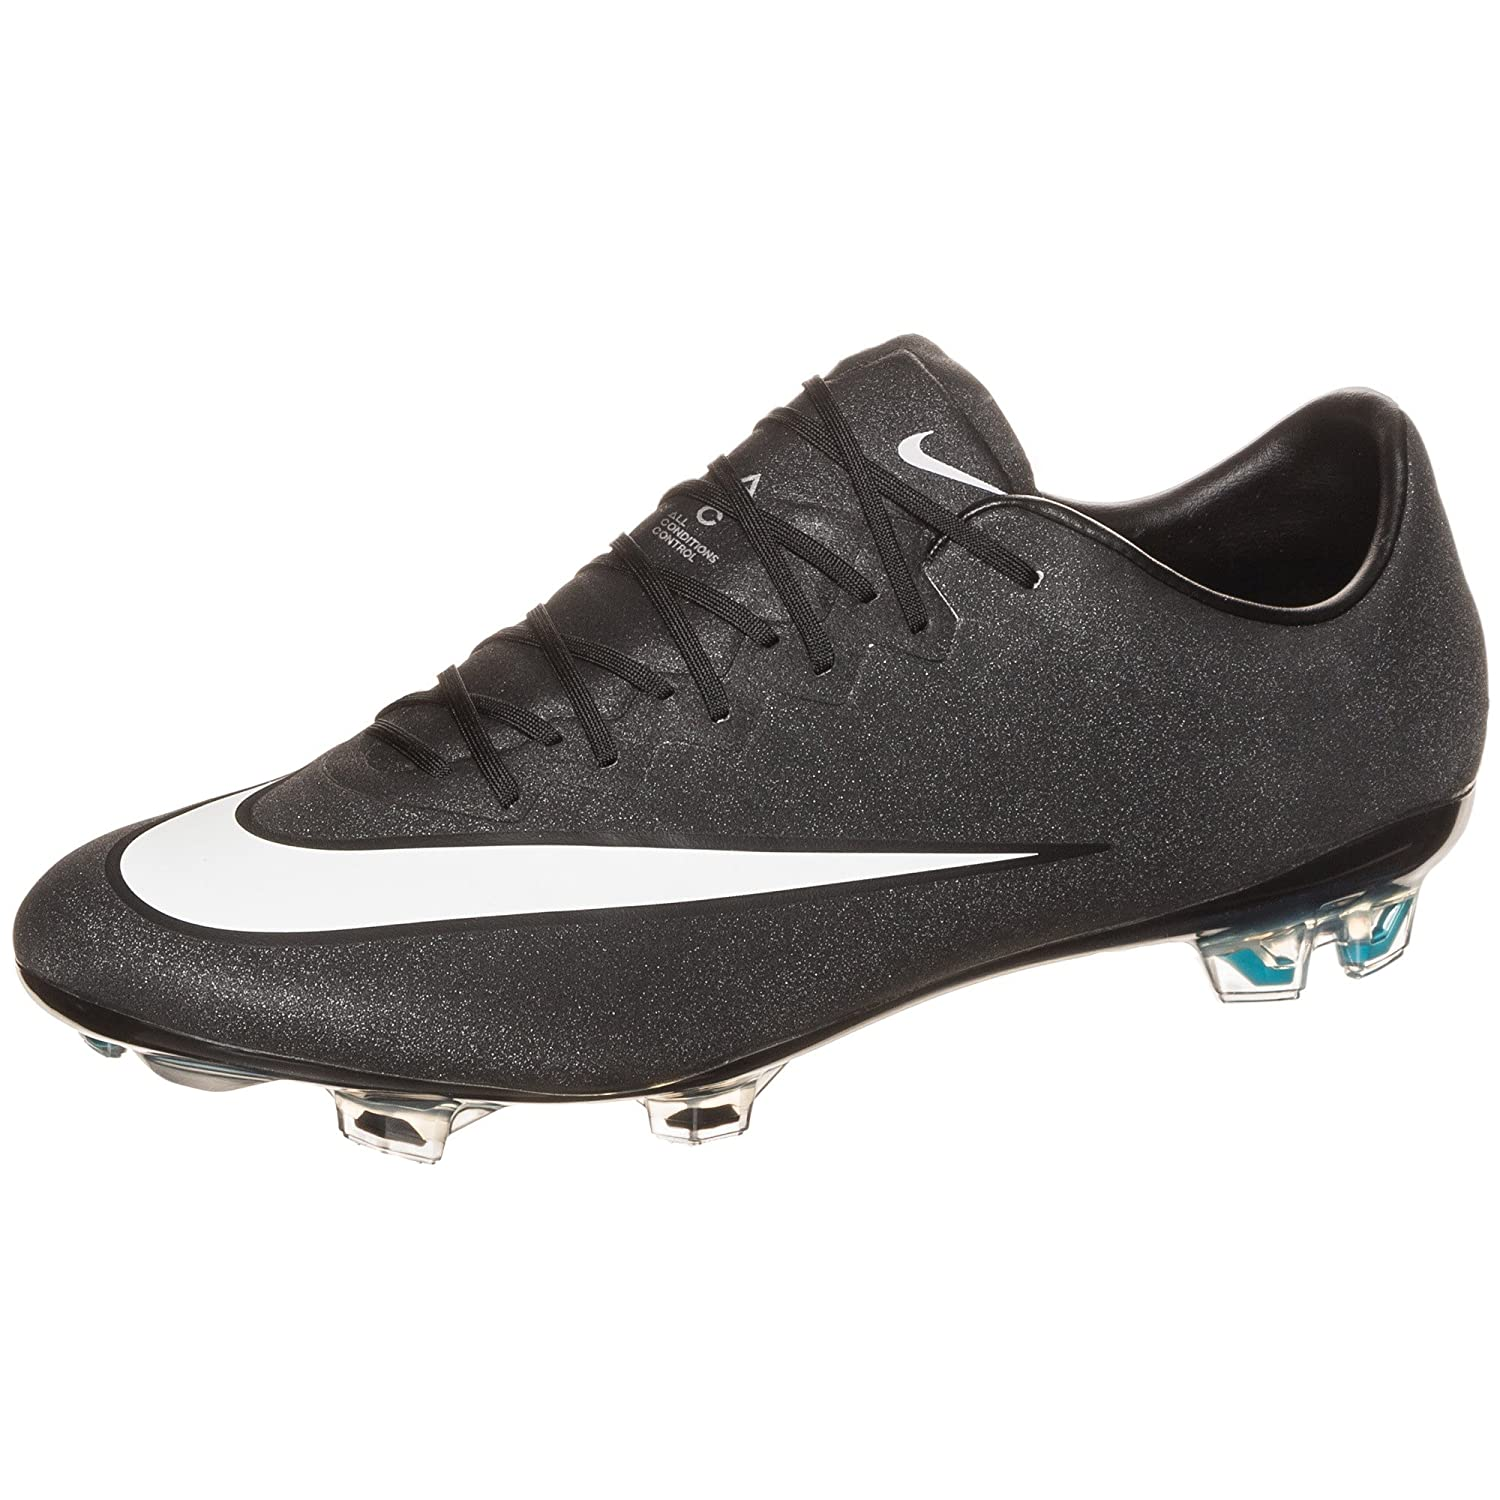 NIKE MEN'S MERCURIAL VAPOR X FG (BLACK/WHITE-NEO TURQ) бутсы nike mercurial victory iii fg 509128 800